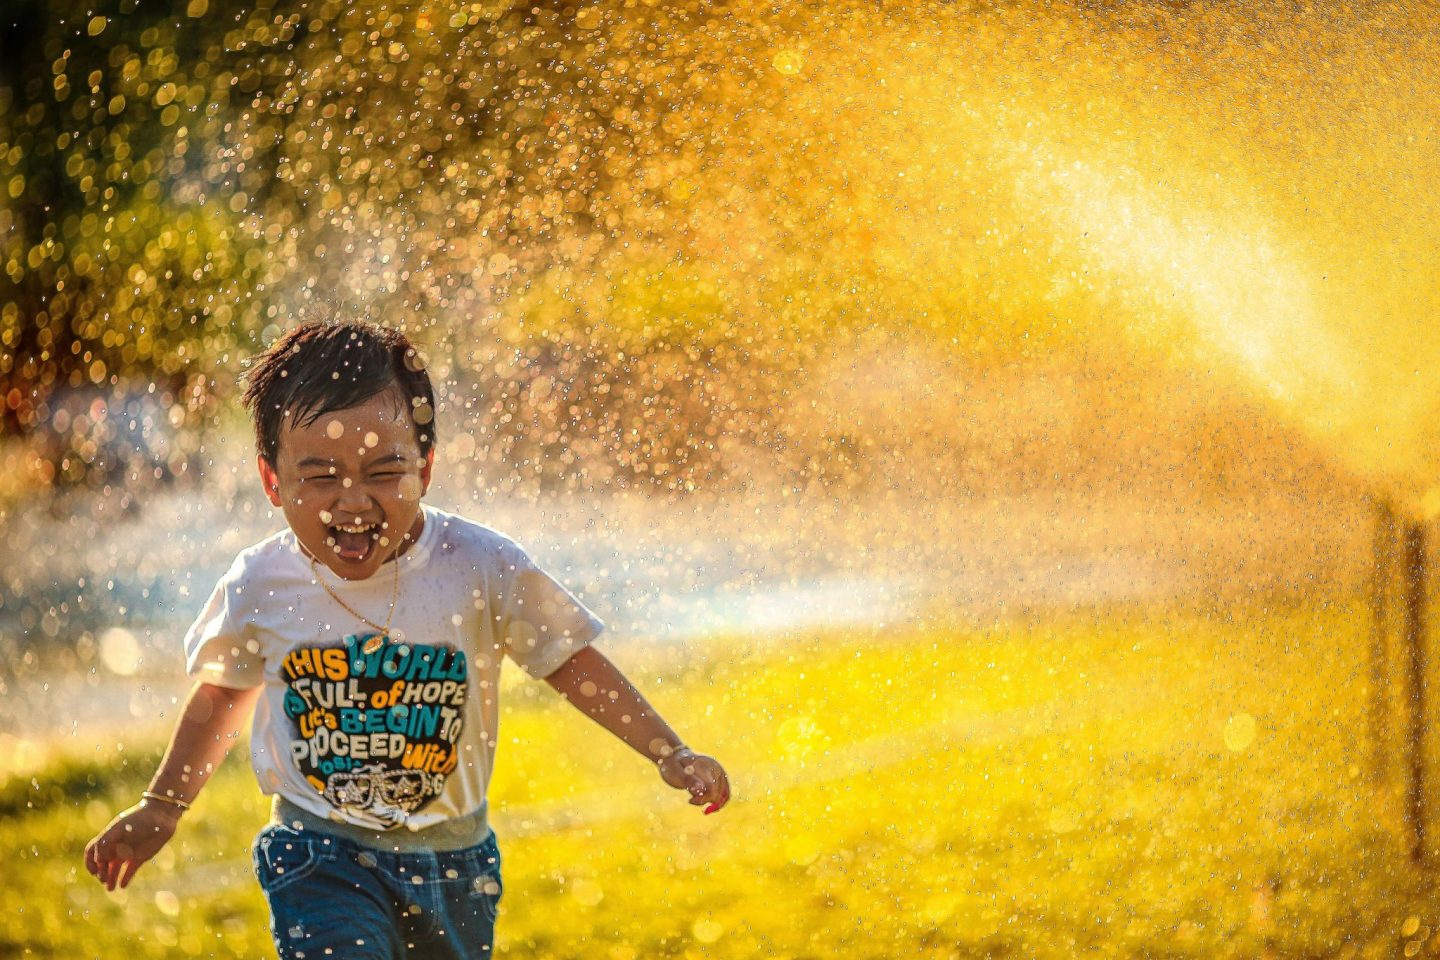 13 simple ways to find the joy in today